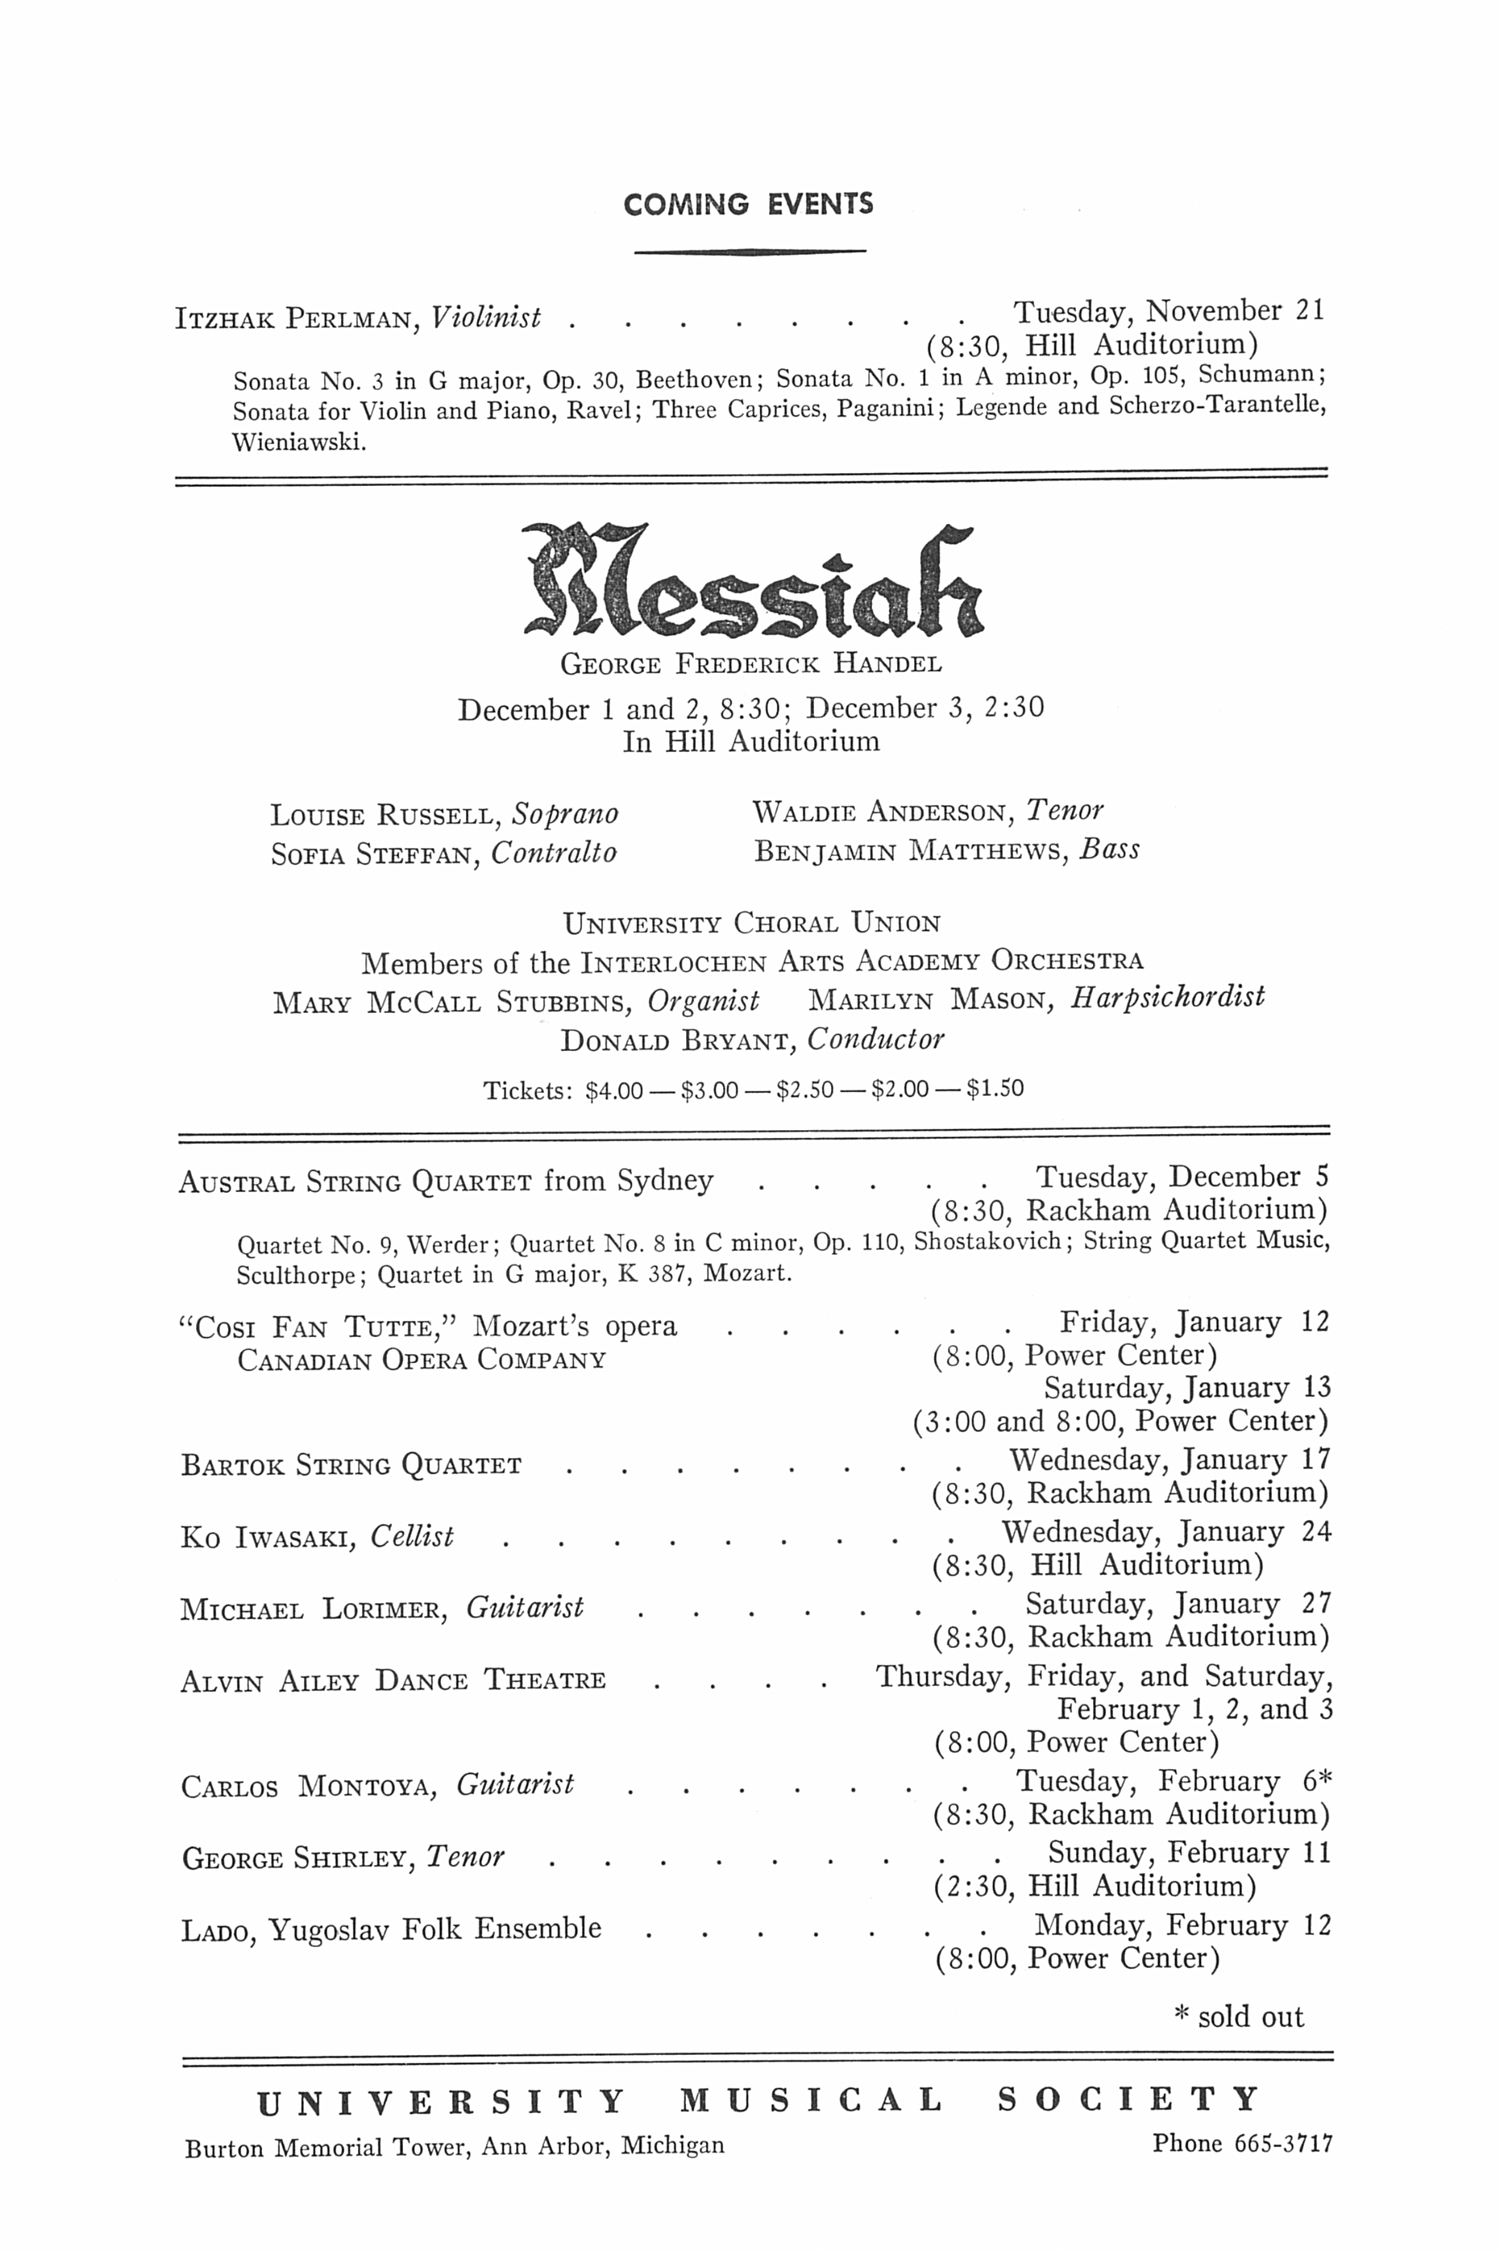 UMS Concert Program, November 18, 1972: Paniagua Quartet --  image